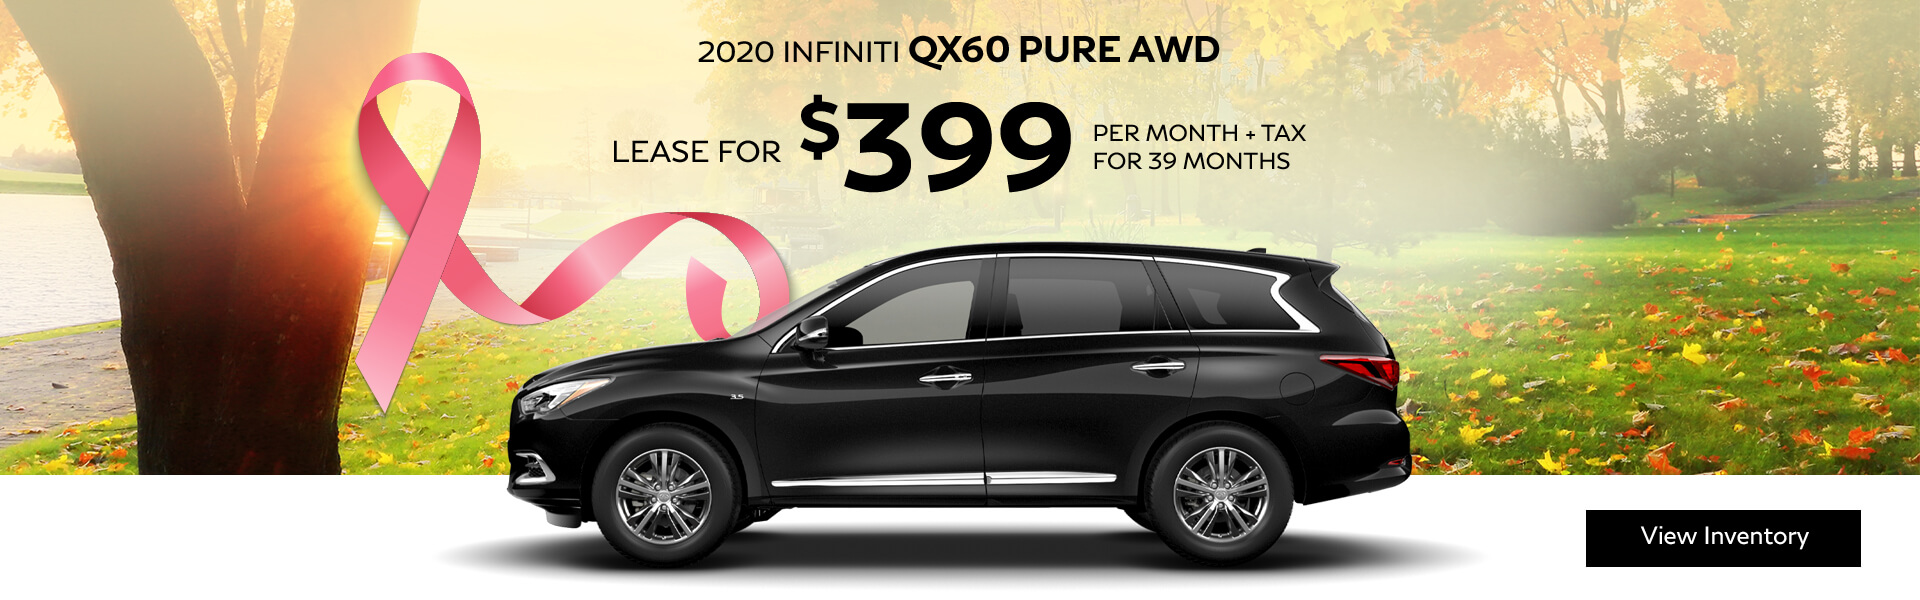 QX60 PURE - Lease for 399